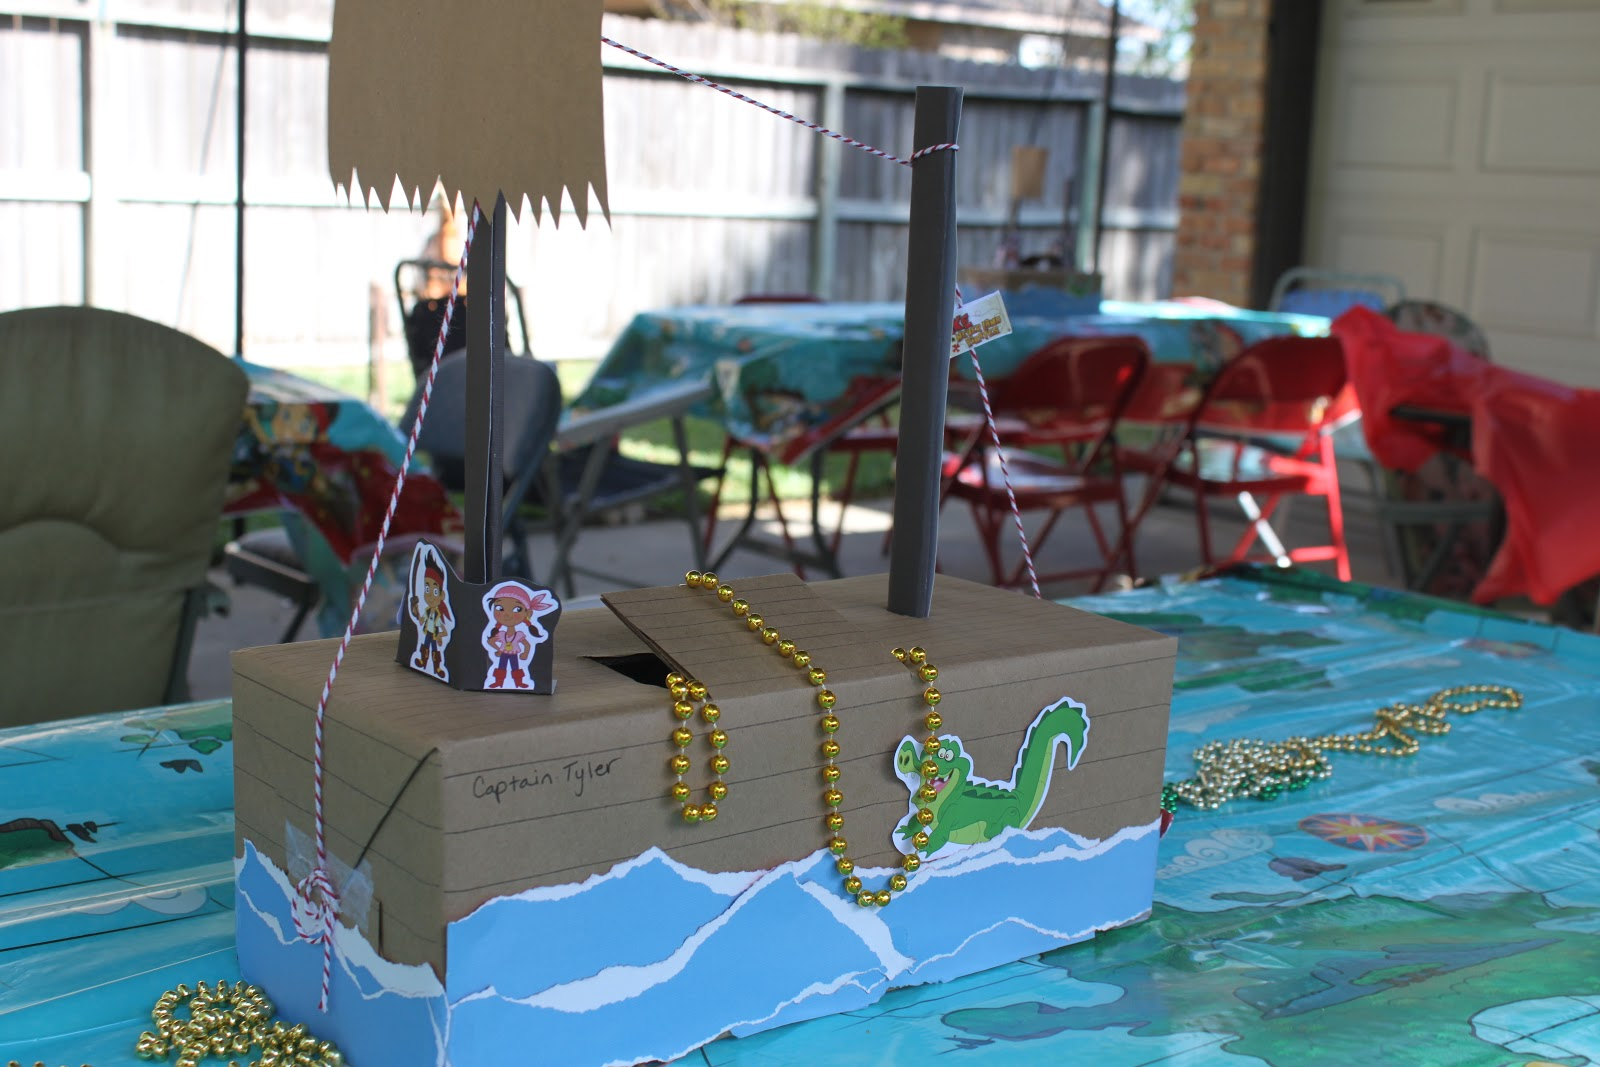 Corporate Crafters: Jake & The Neverland Pirates Party: Decor